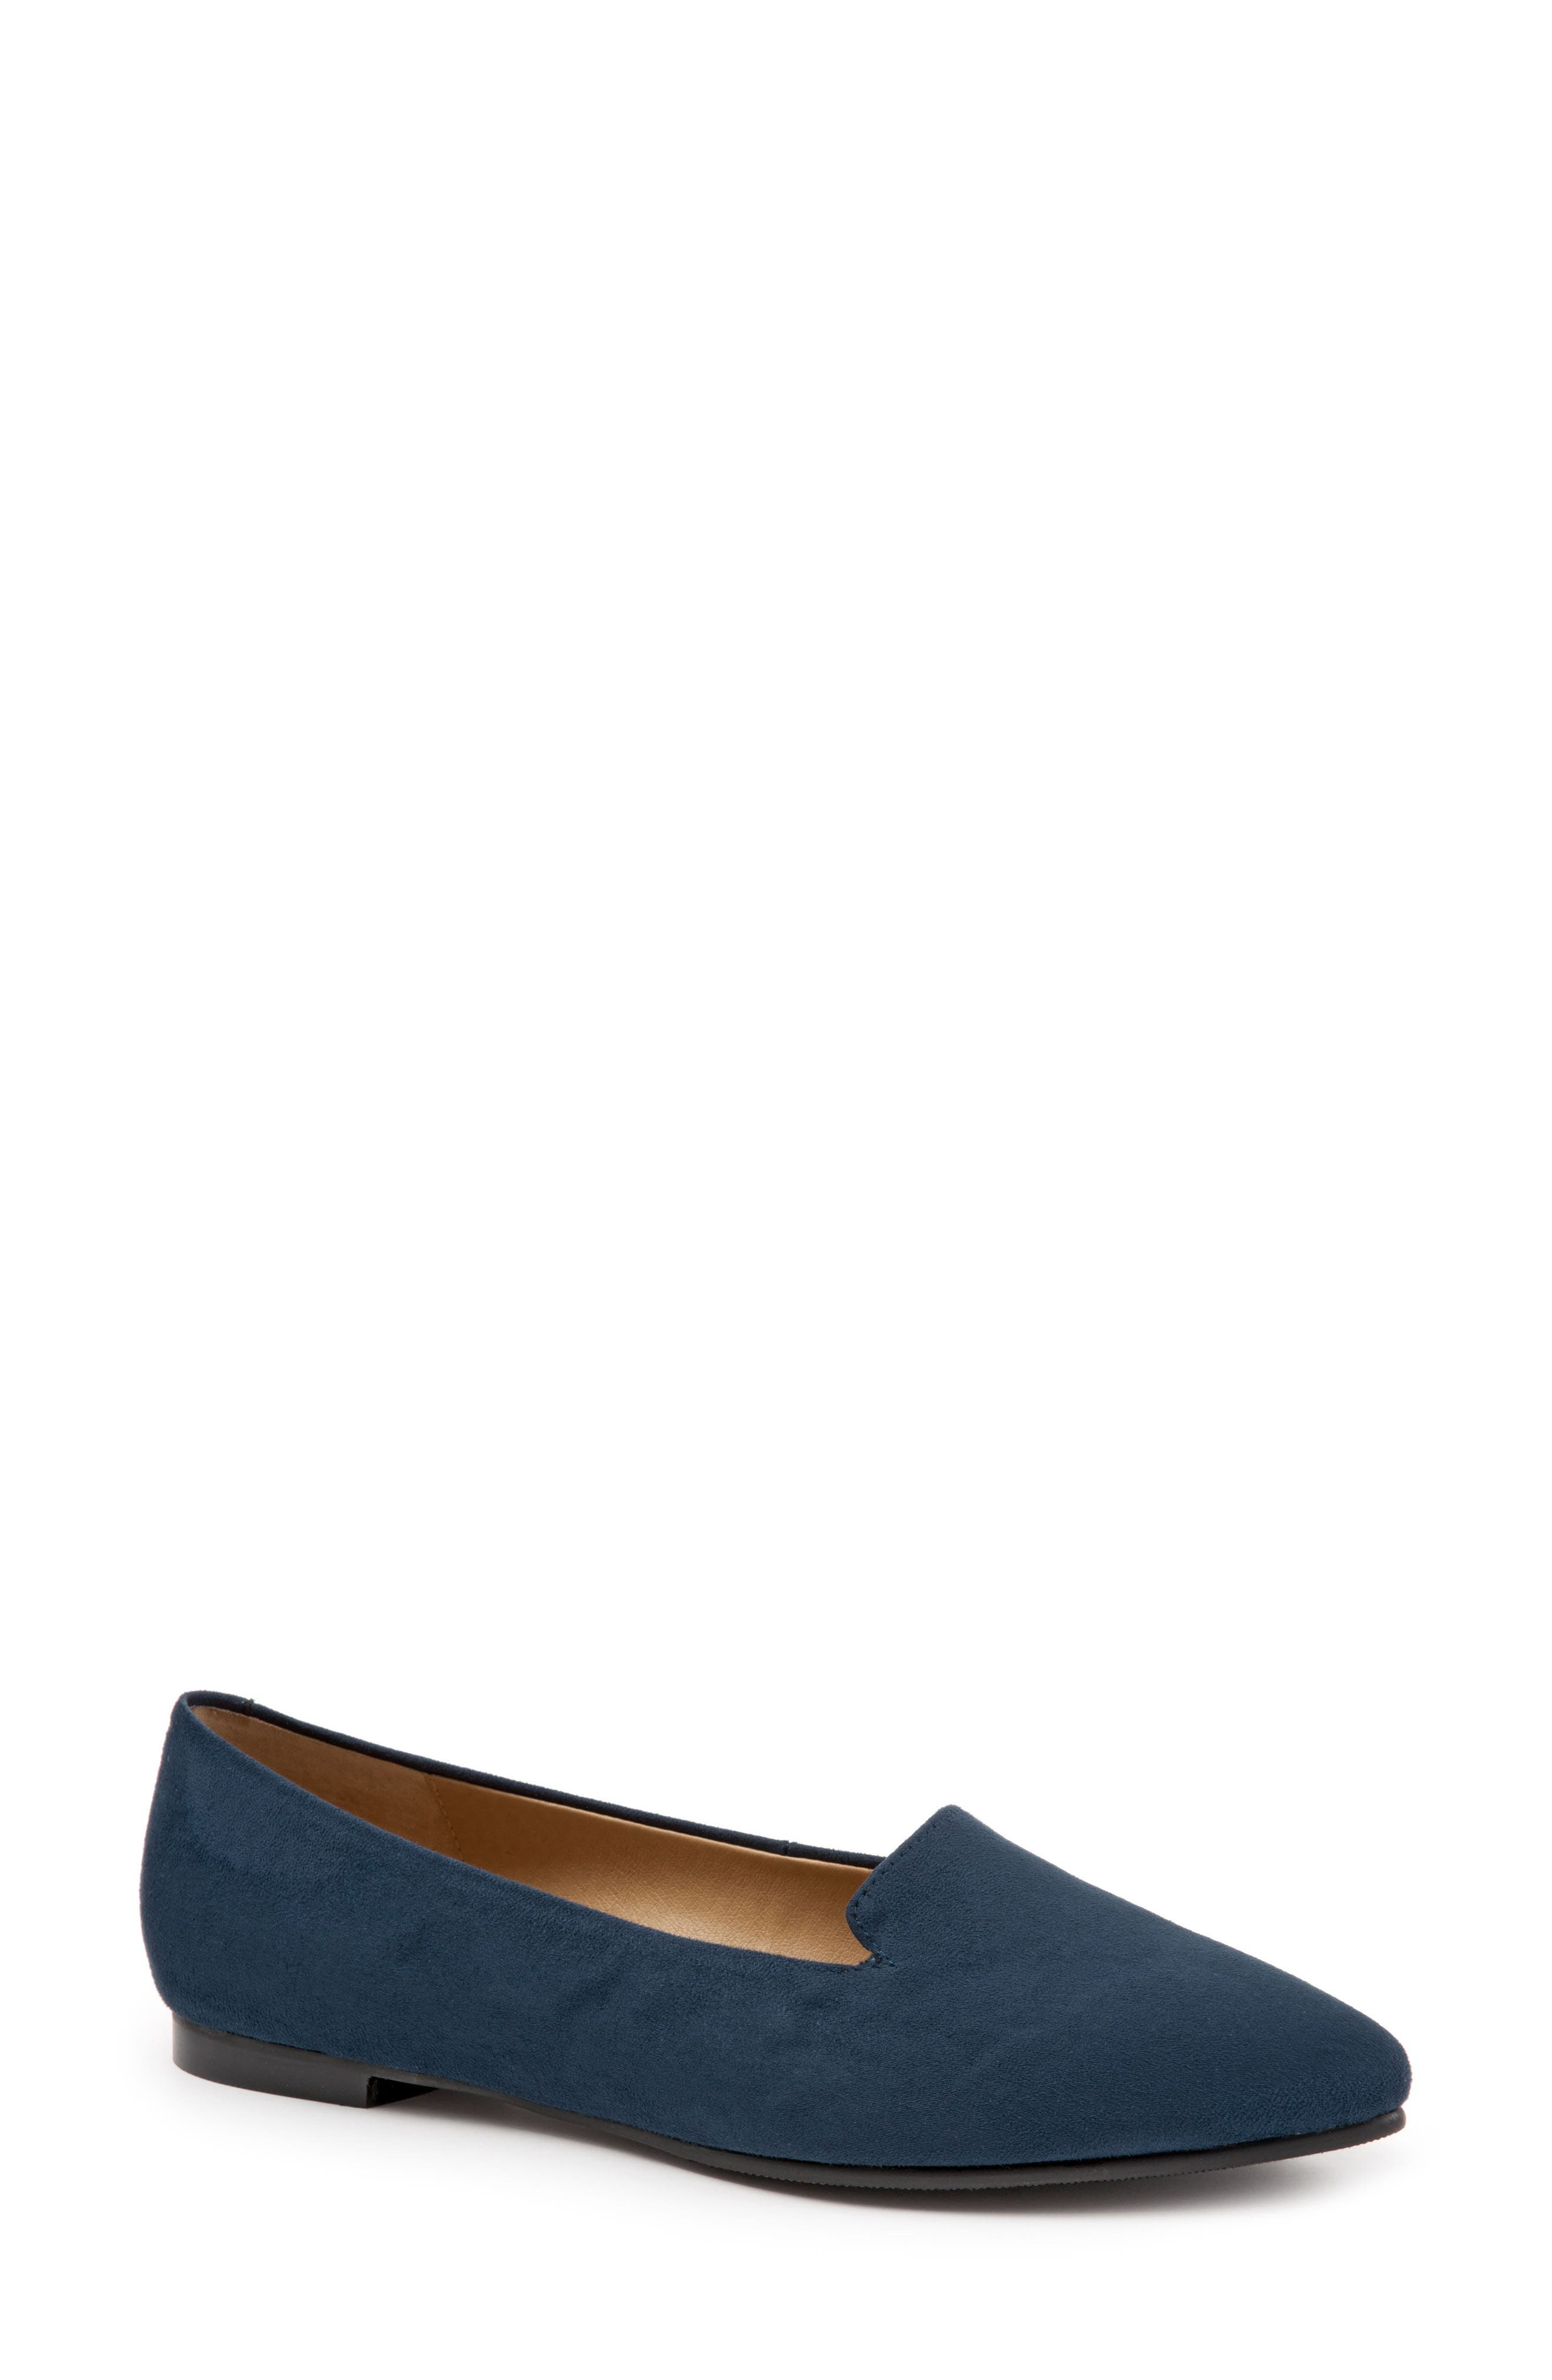 Harlowe Pointy Toe Loafer,                         Main,                         color, Navy Leather